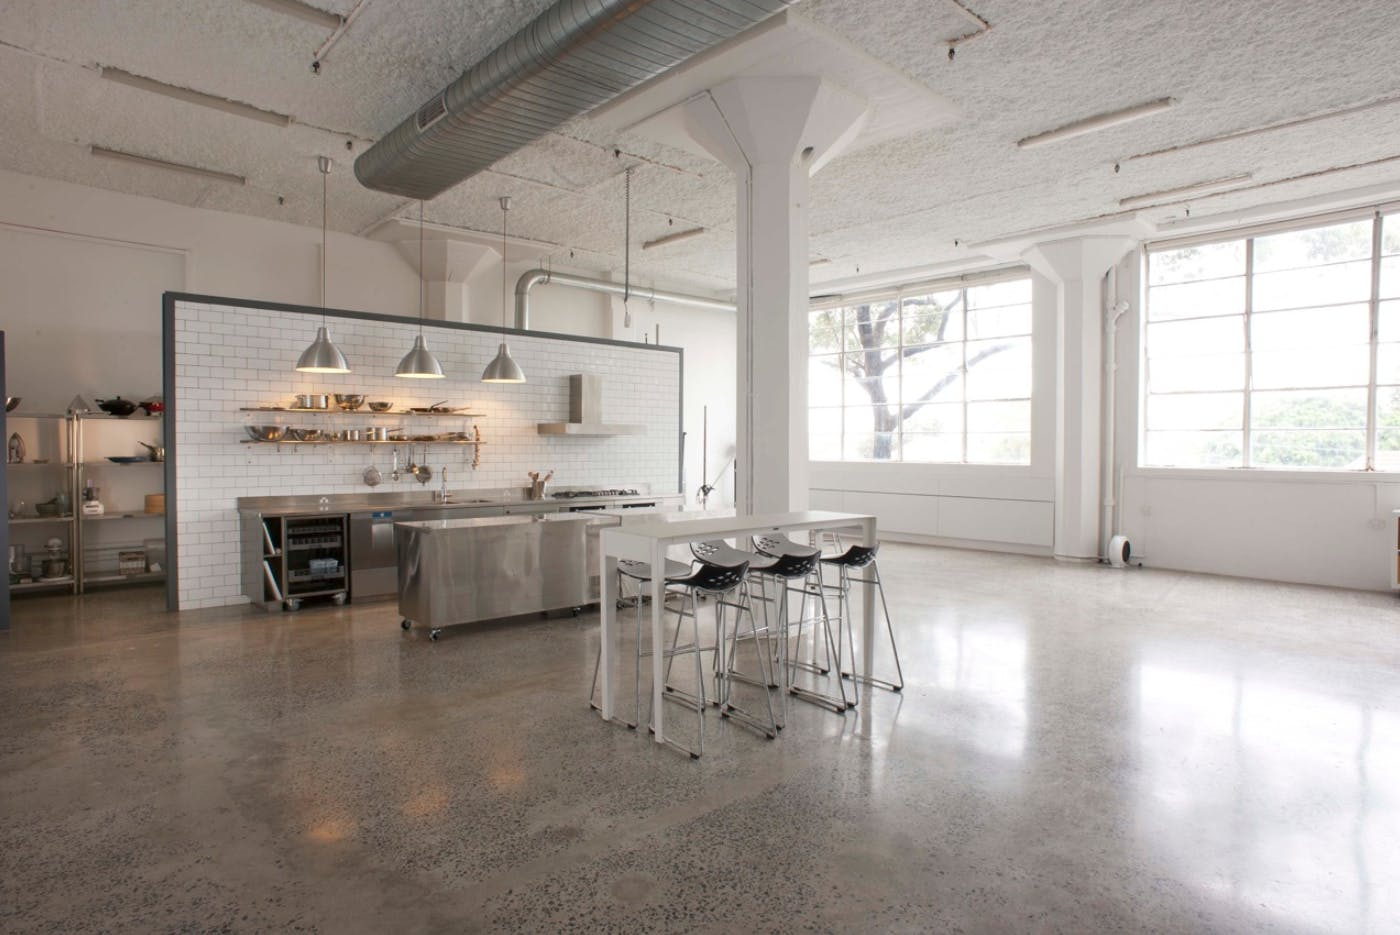 Stunning high-end commercial kitchen space, perfect for photoshoots & workshops, image 1